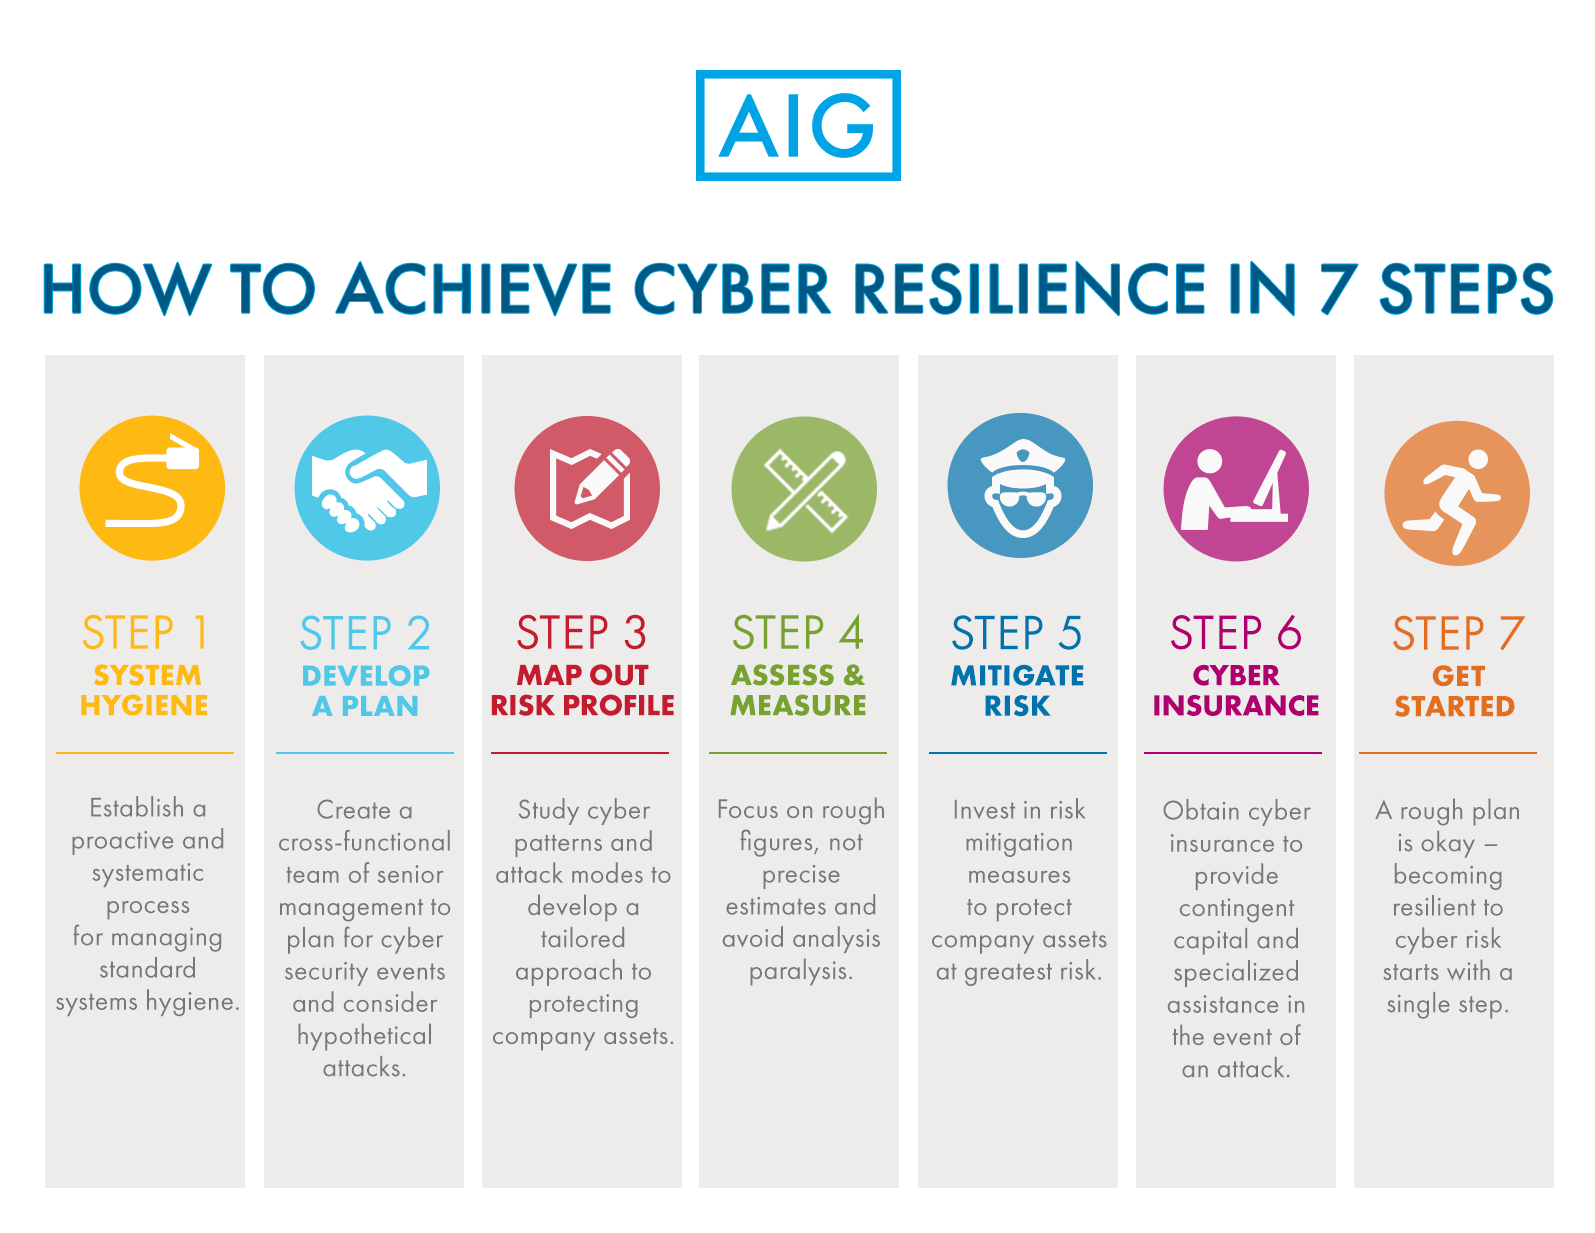 7 Steps To A Cyber Resilient Business